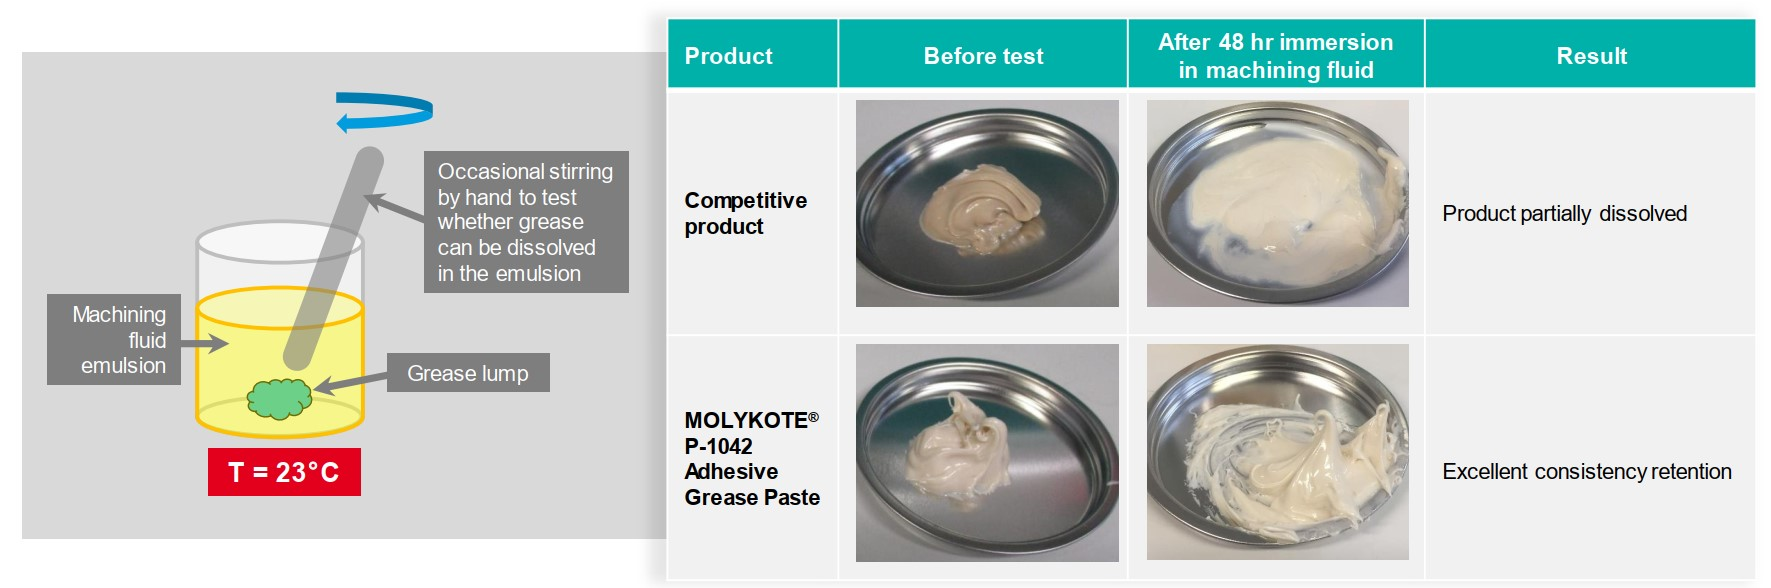 MOLYKOTE® P-1042 Adhesive Grease Paste_static machining fluid compatibility test